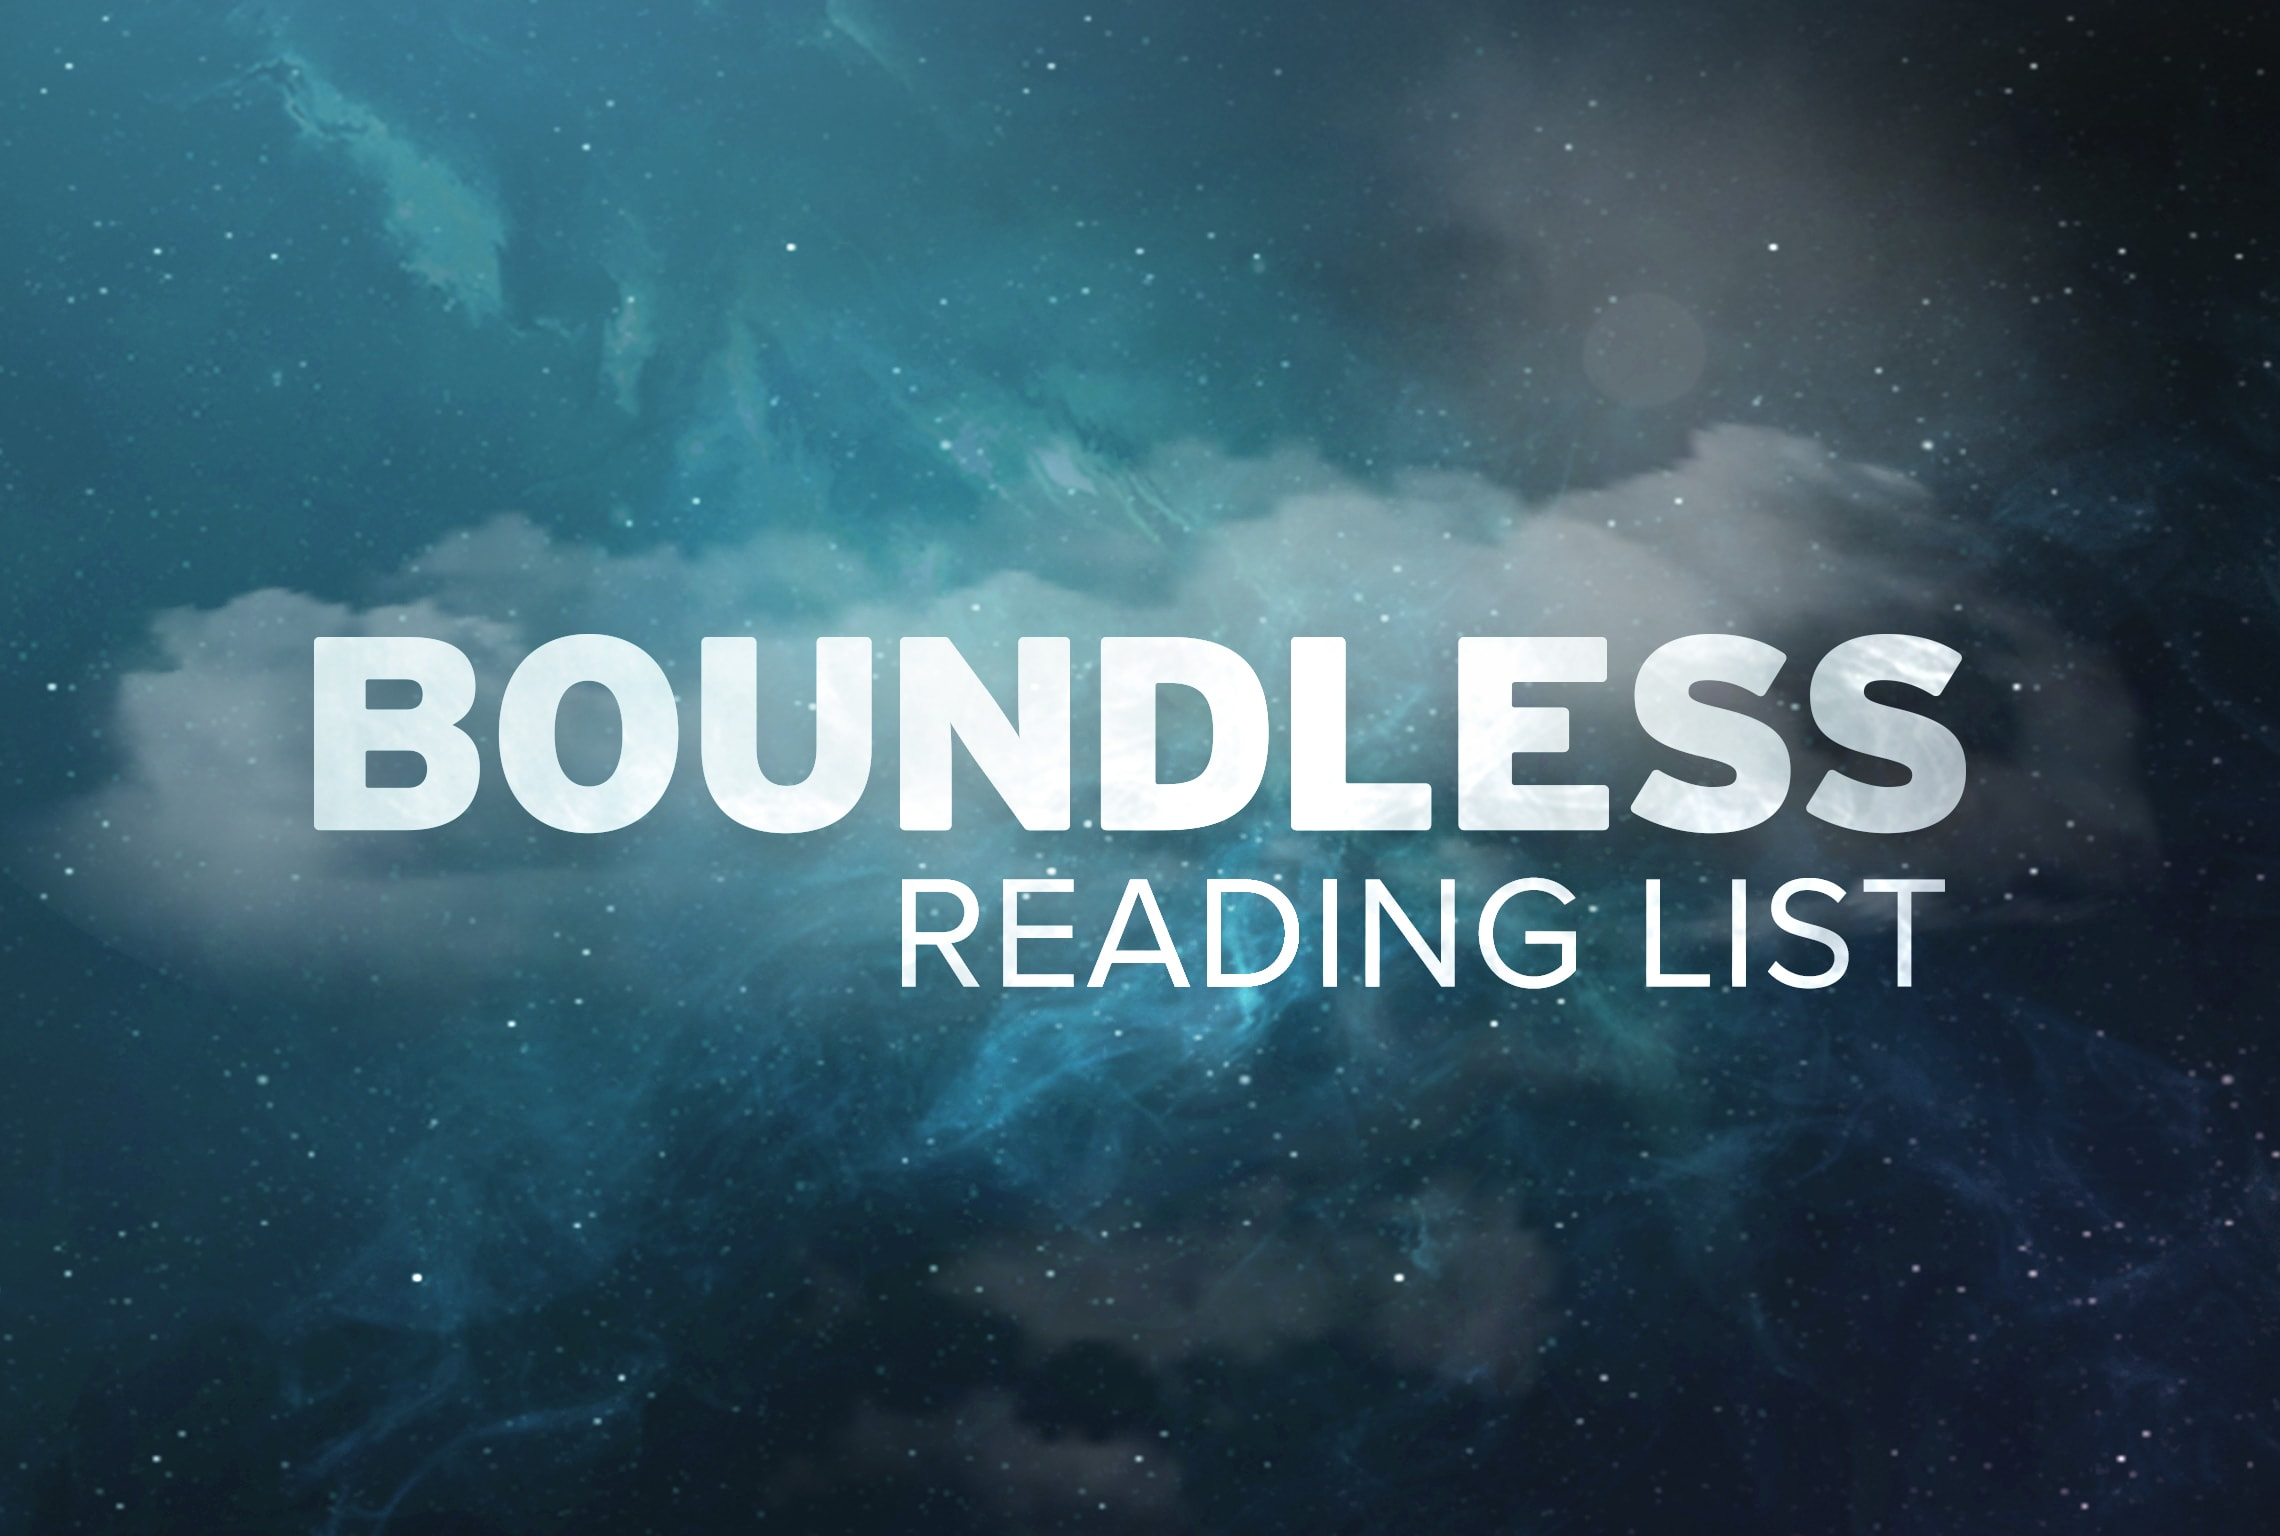 sales books success books boundless 2020 nutshell virtual conference